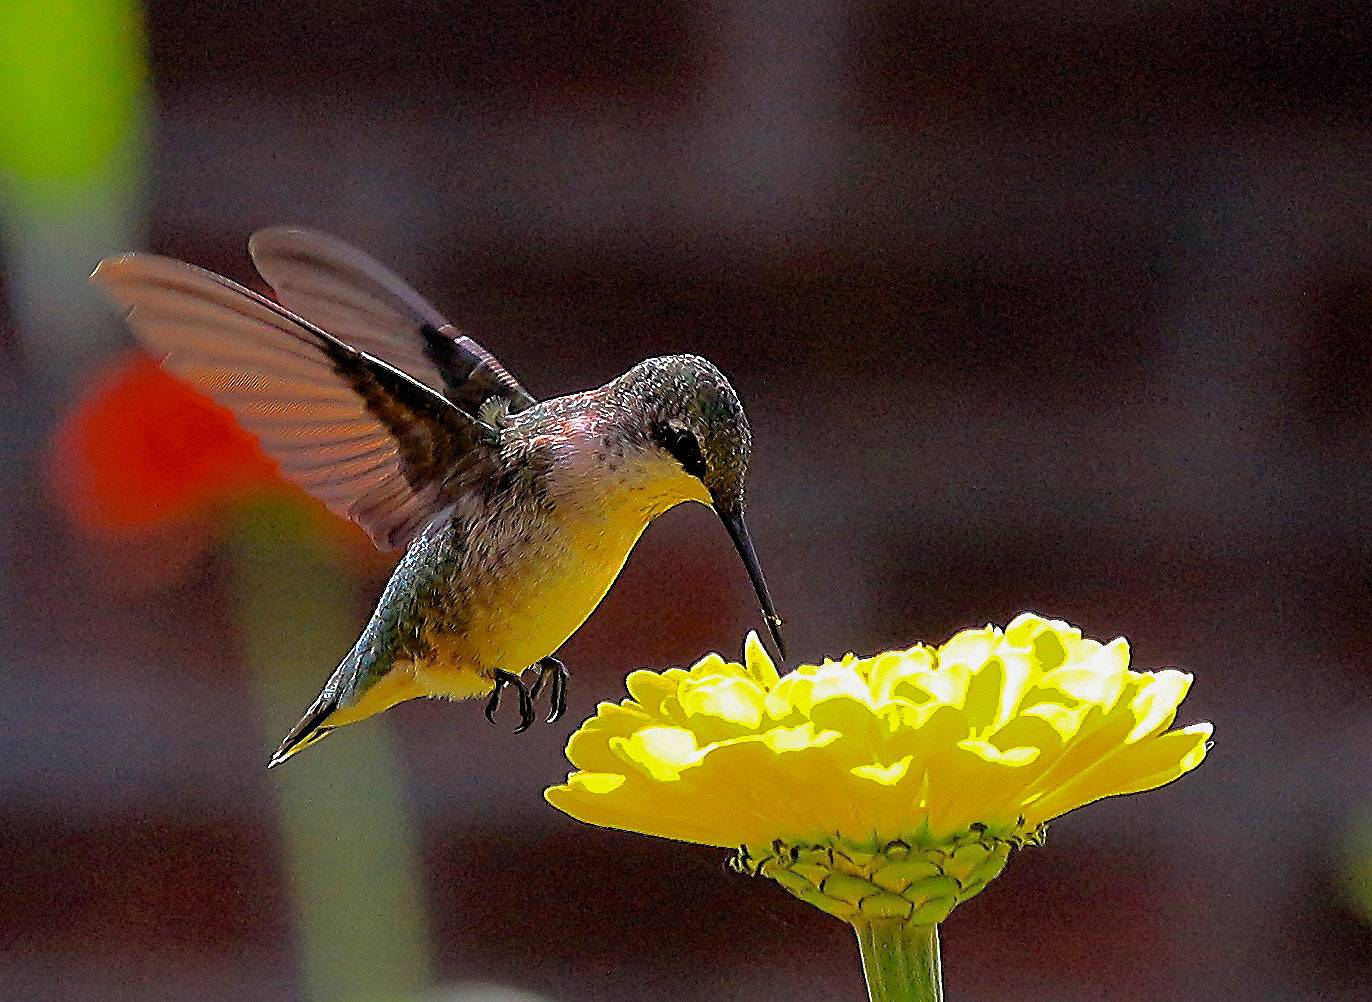 Hummingbirds feed themselves before migration at the chicago Botanic Gardens in Glencoe.